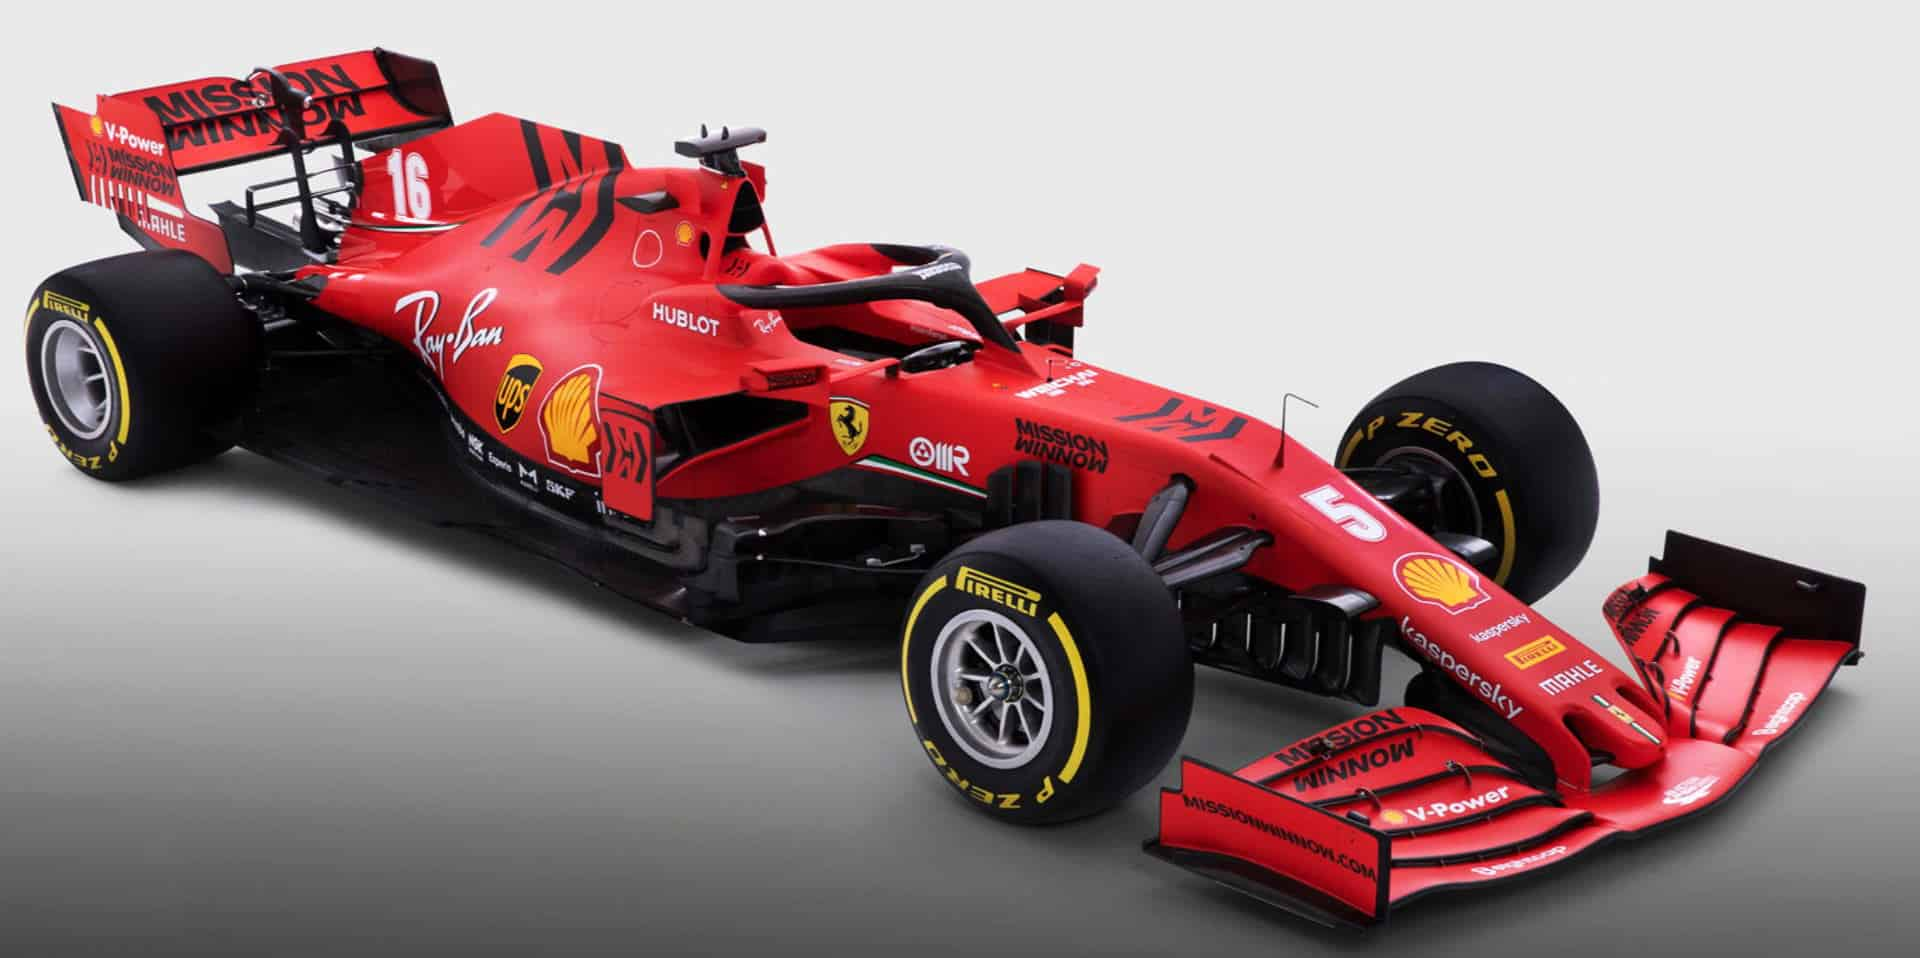 Ferrari F1 SF1000 2020 car studio photo side angle Photo Ferrari